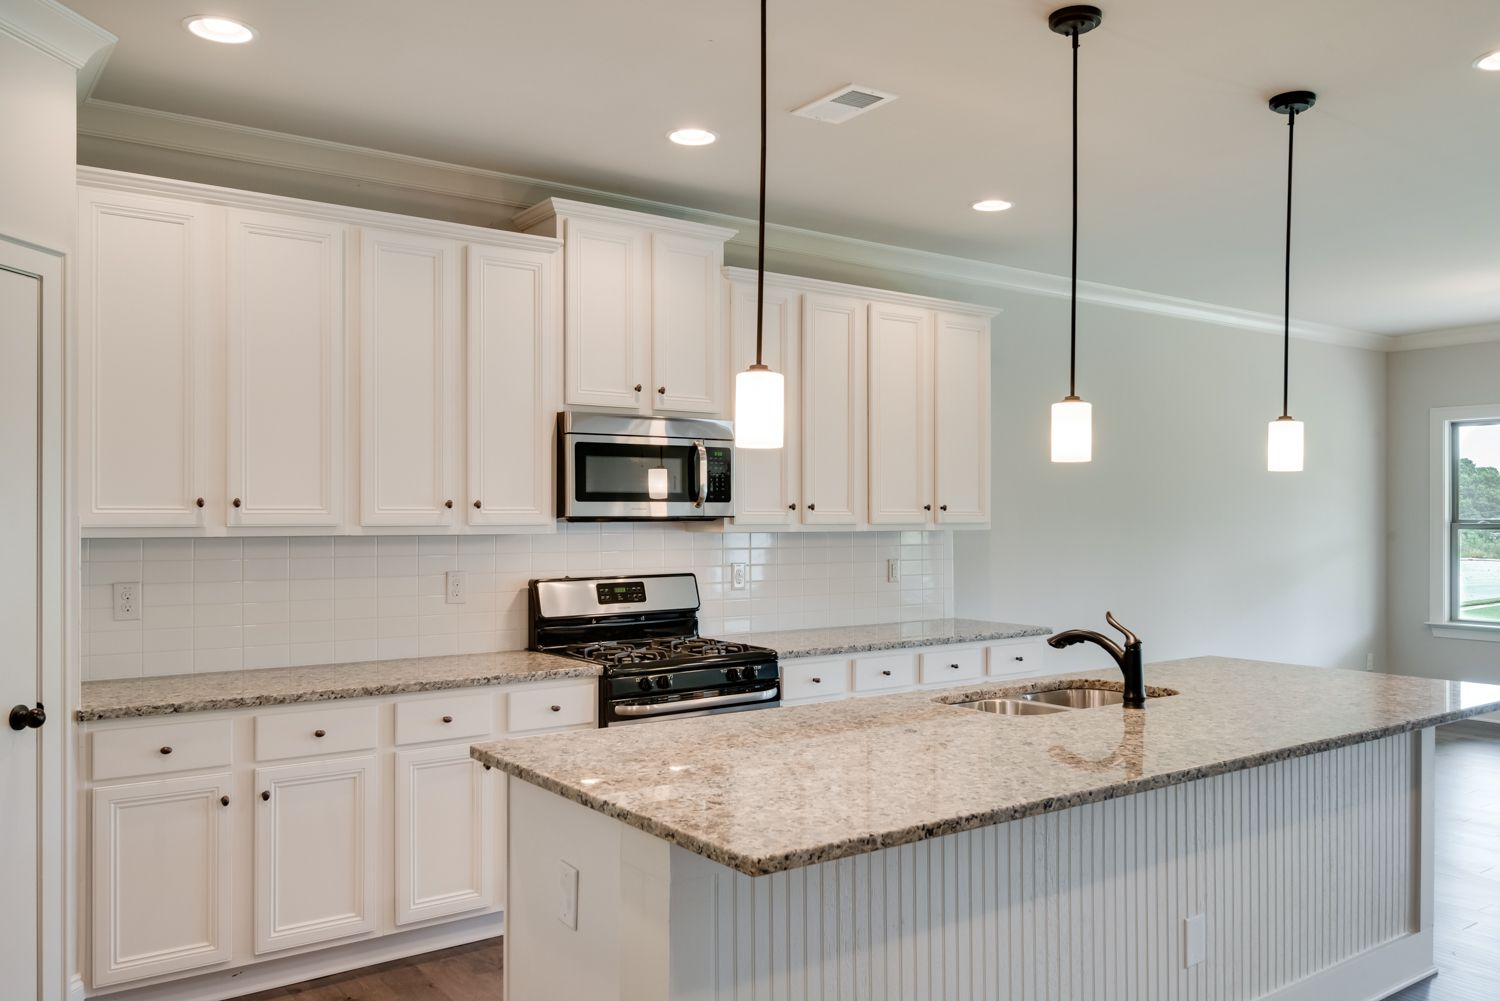 This New Construction Kitchen In Chattanooga In Simple And Classic